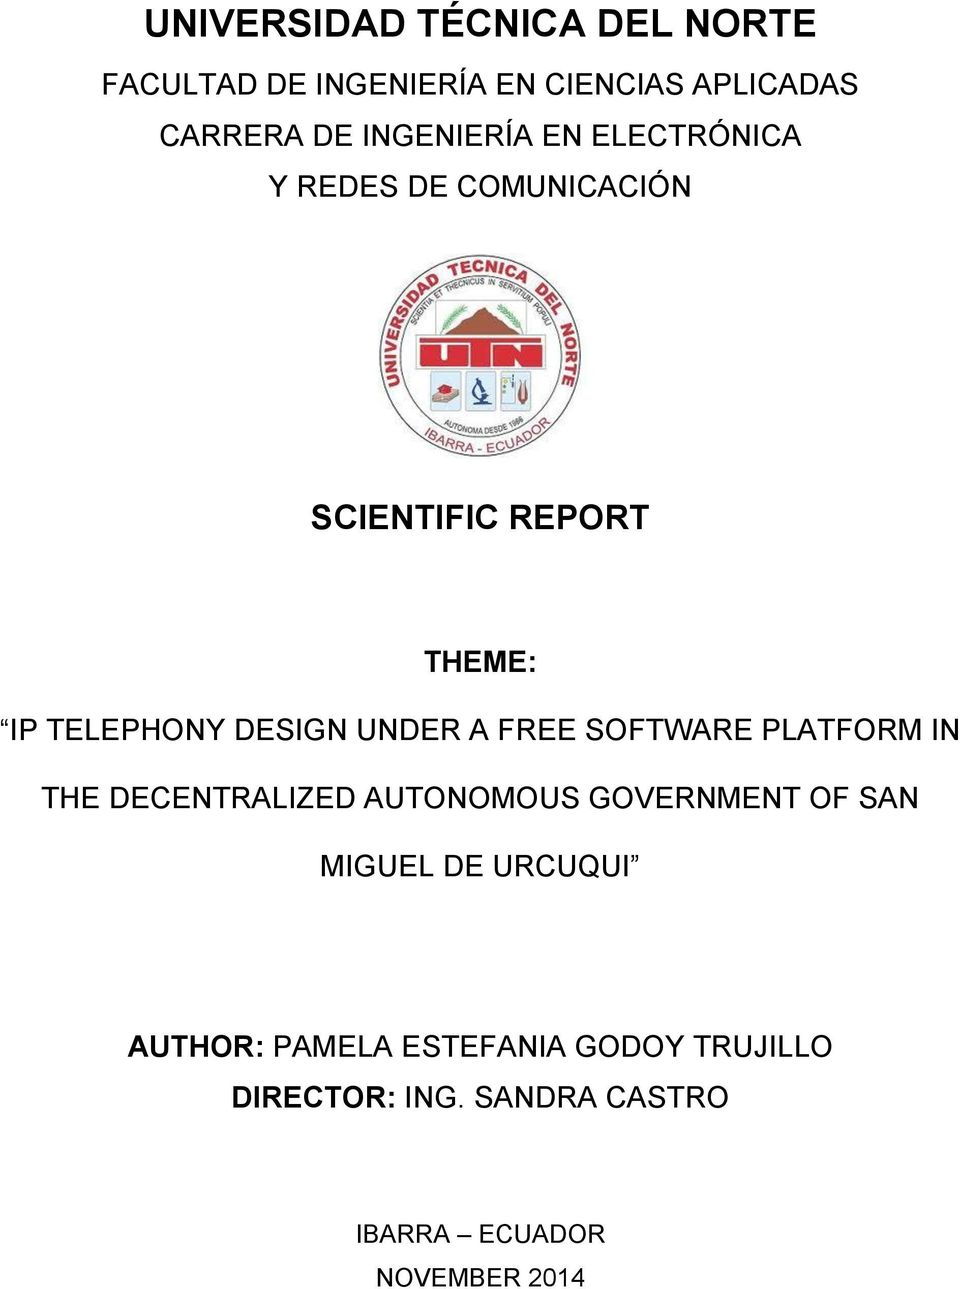 UNDER A FREE SOFTWARE PLATFORM IN THE DECENTRALIZED AUTONOMOUS GOVERNMENT OF SAN MIGUEL DE